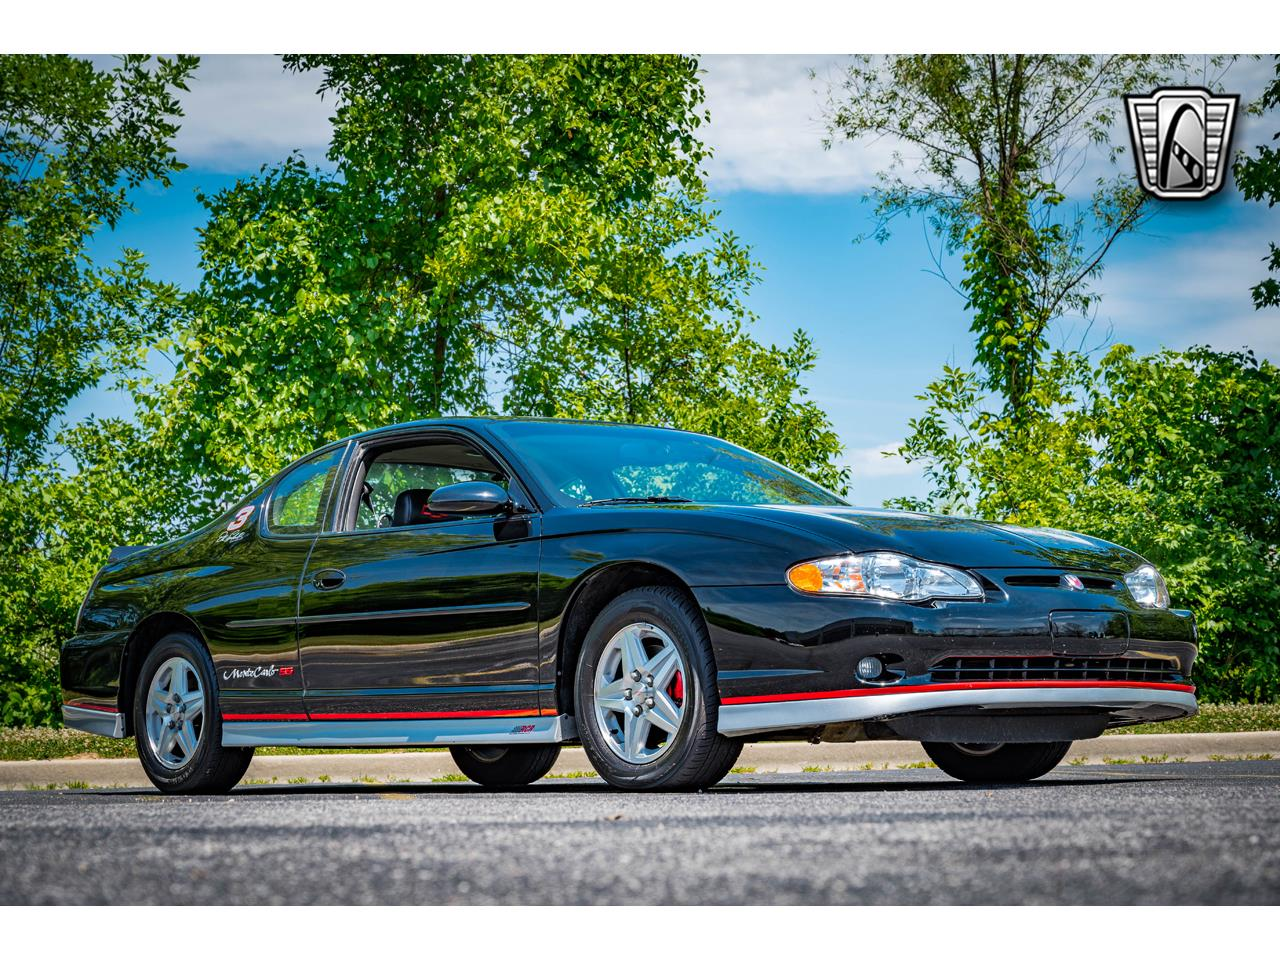 2002 Chevrolet Monte Carlo (CC-1375503) for sale in O'Fallon, Illinois